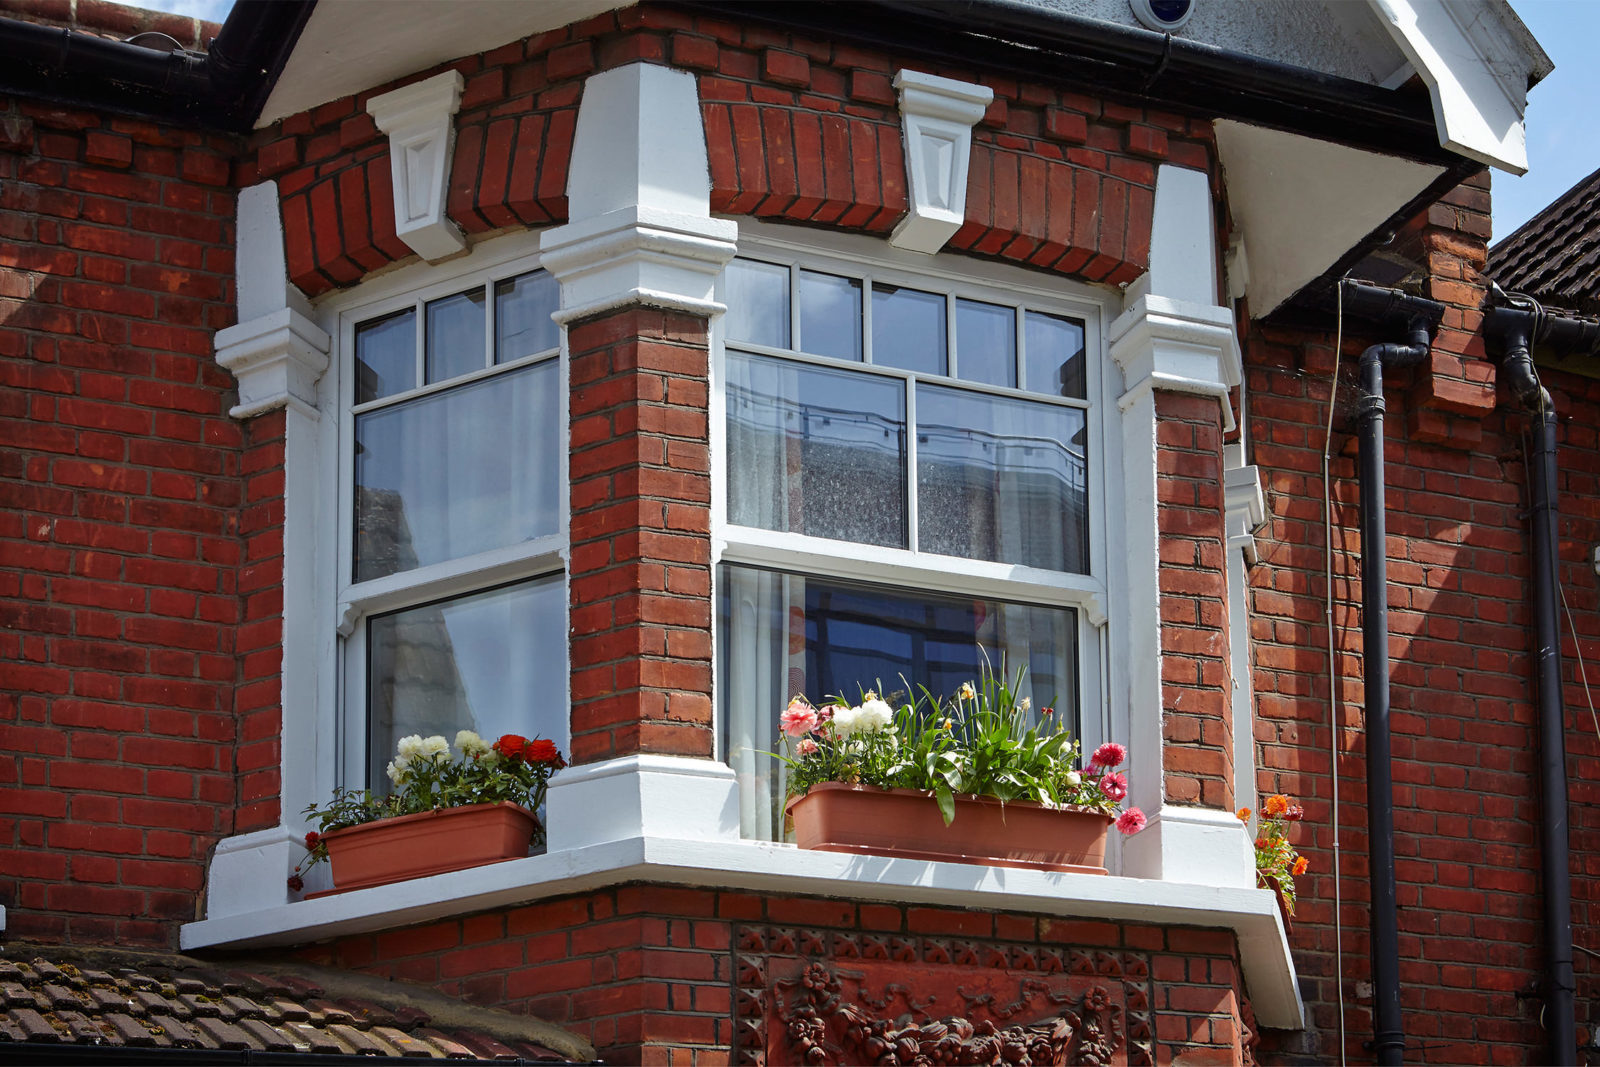 How To Maintain Your New Windows?